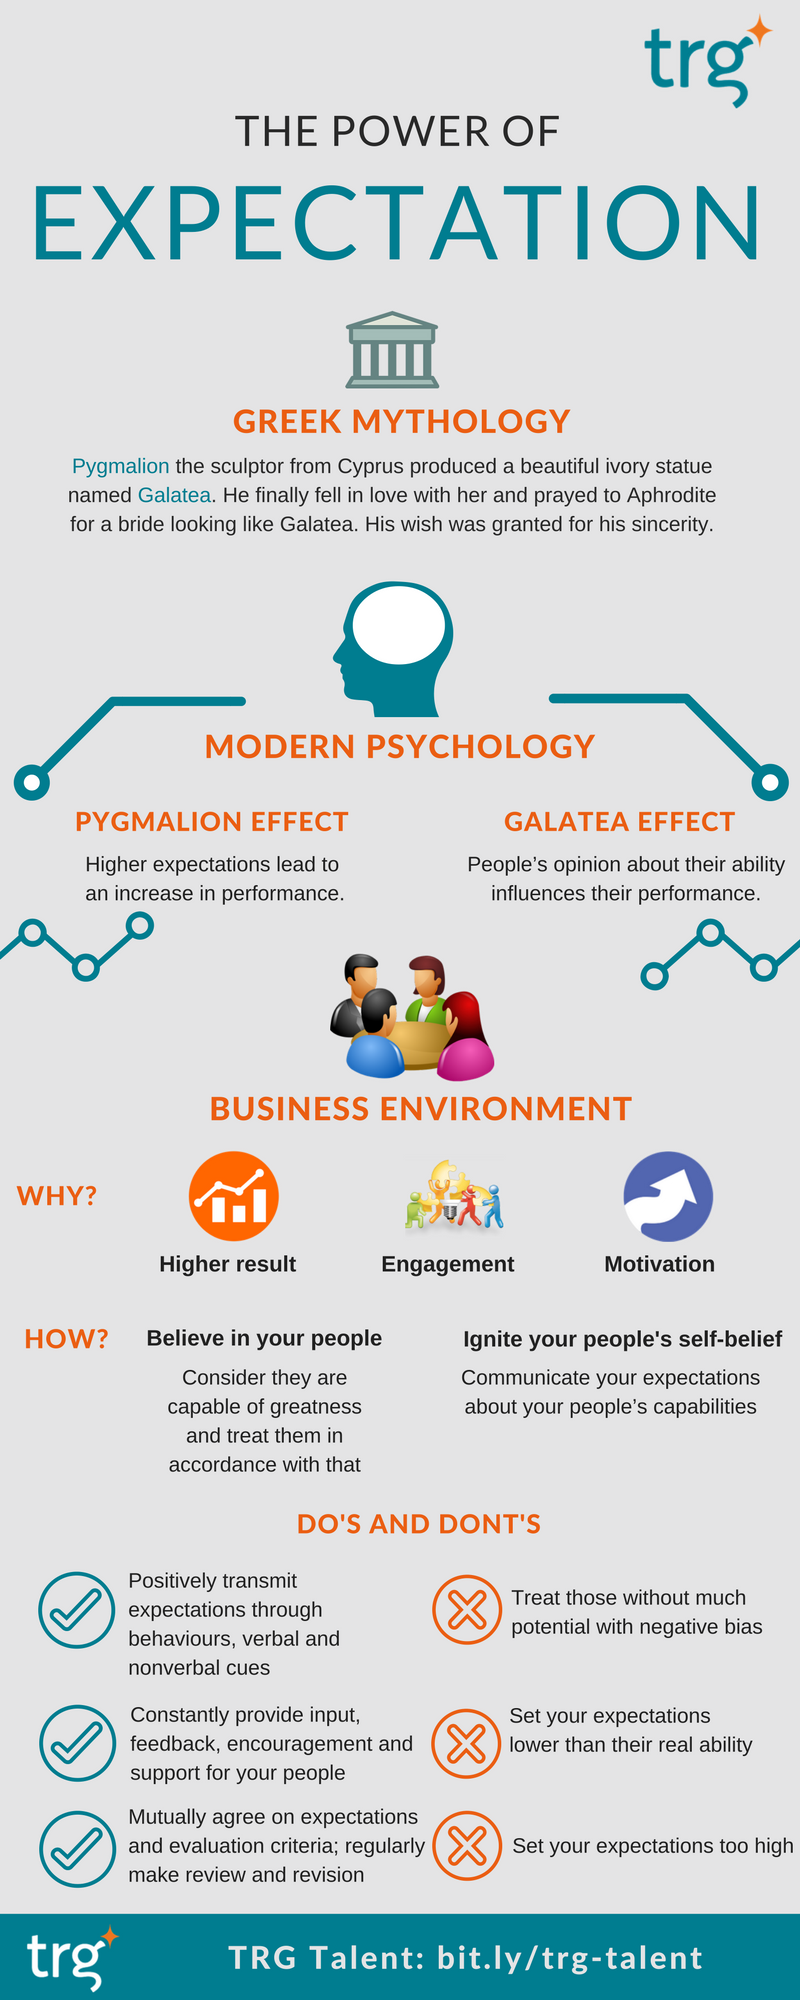 [INFOGRAPHIC] The power of expectation